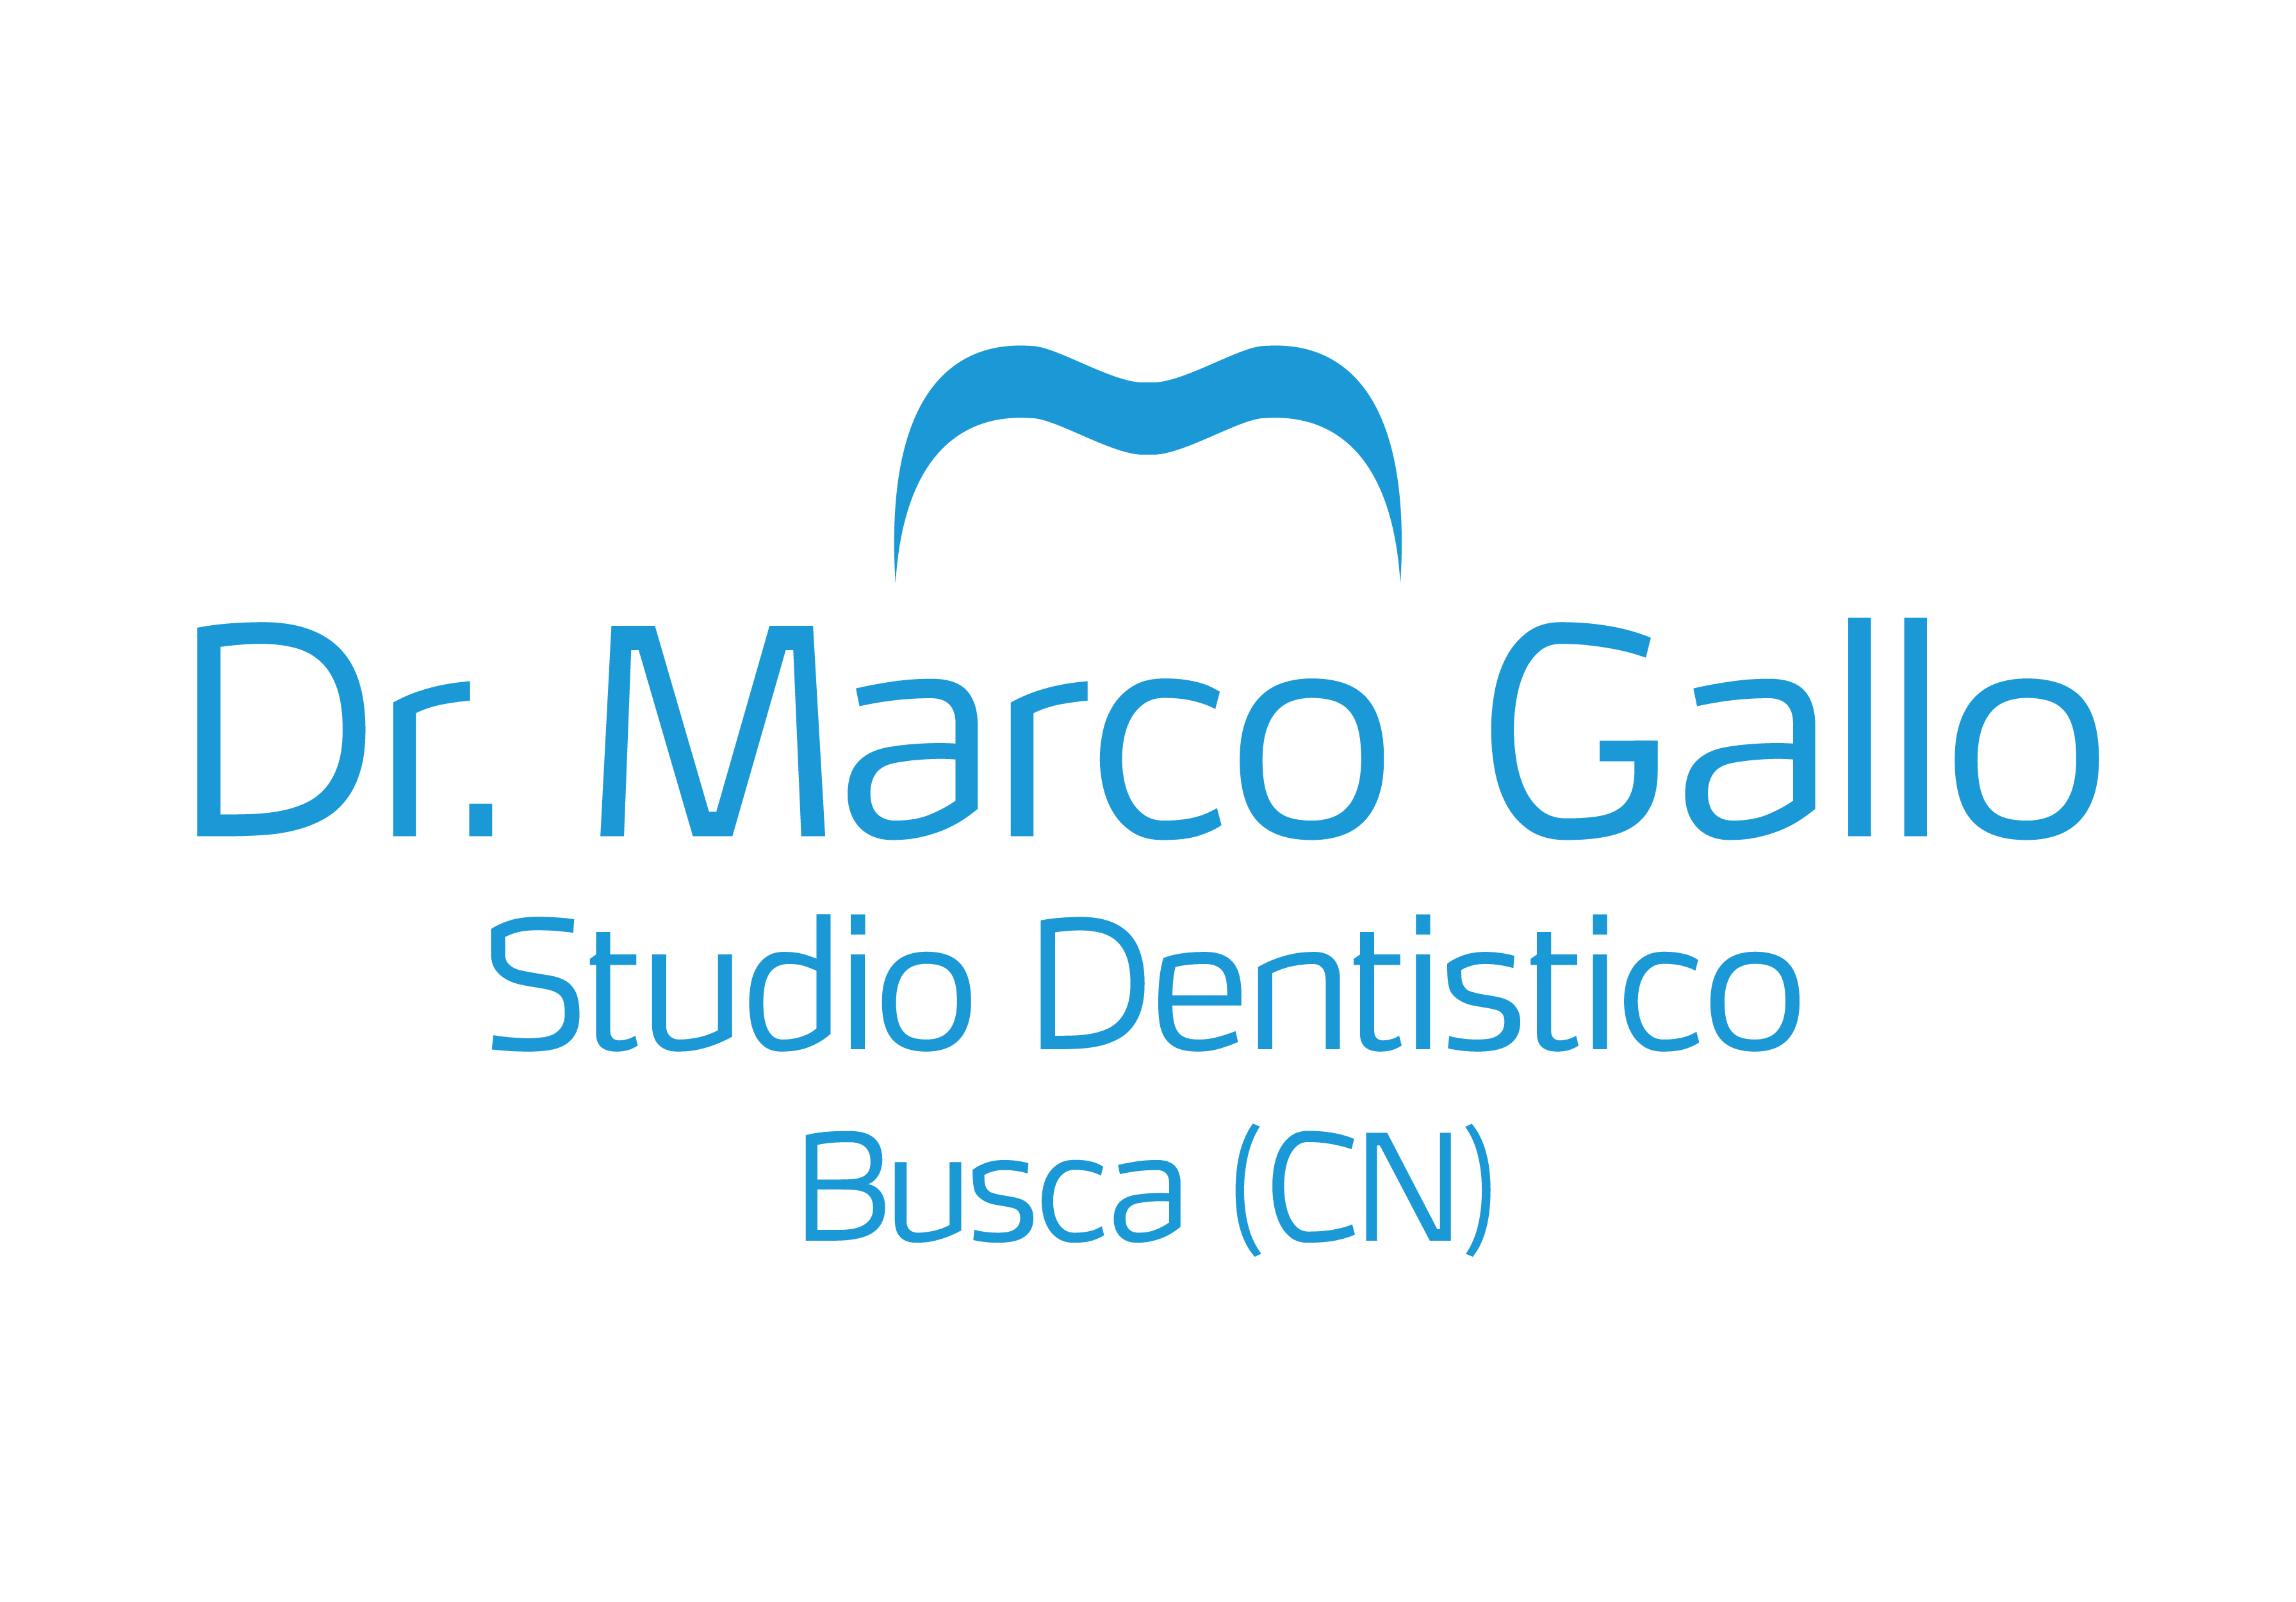 dr marco gallo logo